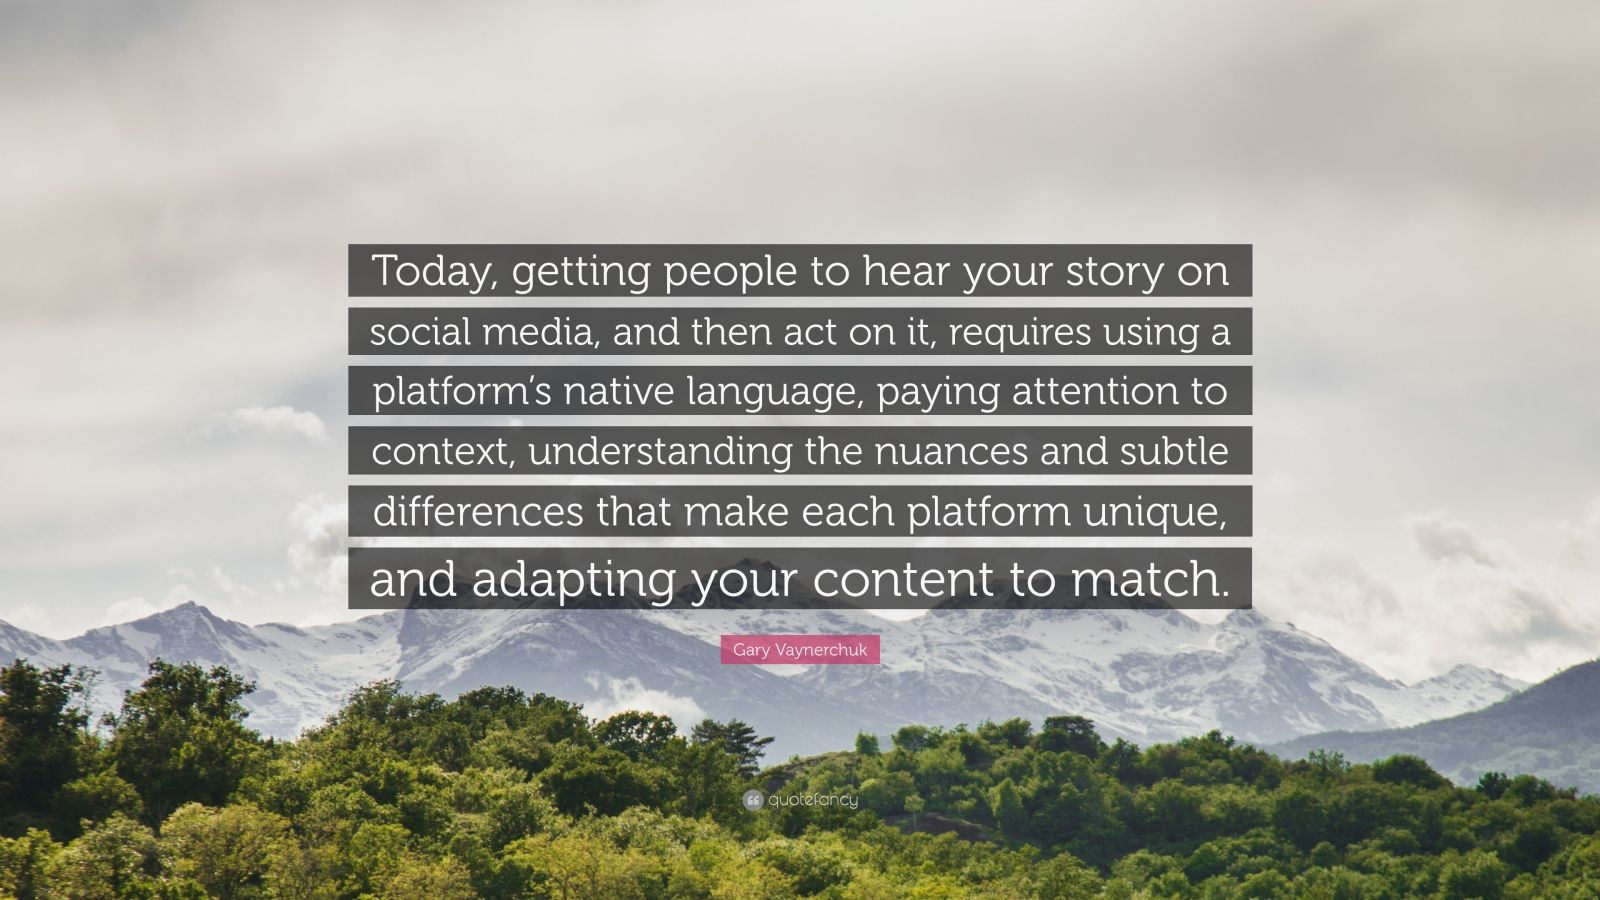 """Gary Vaynerchuk Quote: """"Today, getting people to hear your story on social media, and then act on it, requires using a platform's native language, paying attention to context, understanding the nuances and subtle differences that make each platform unique, and adapting your content to match."""""""